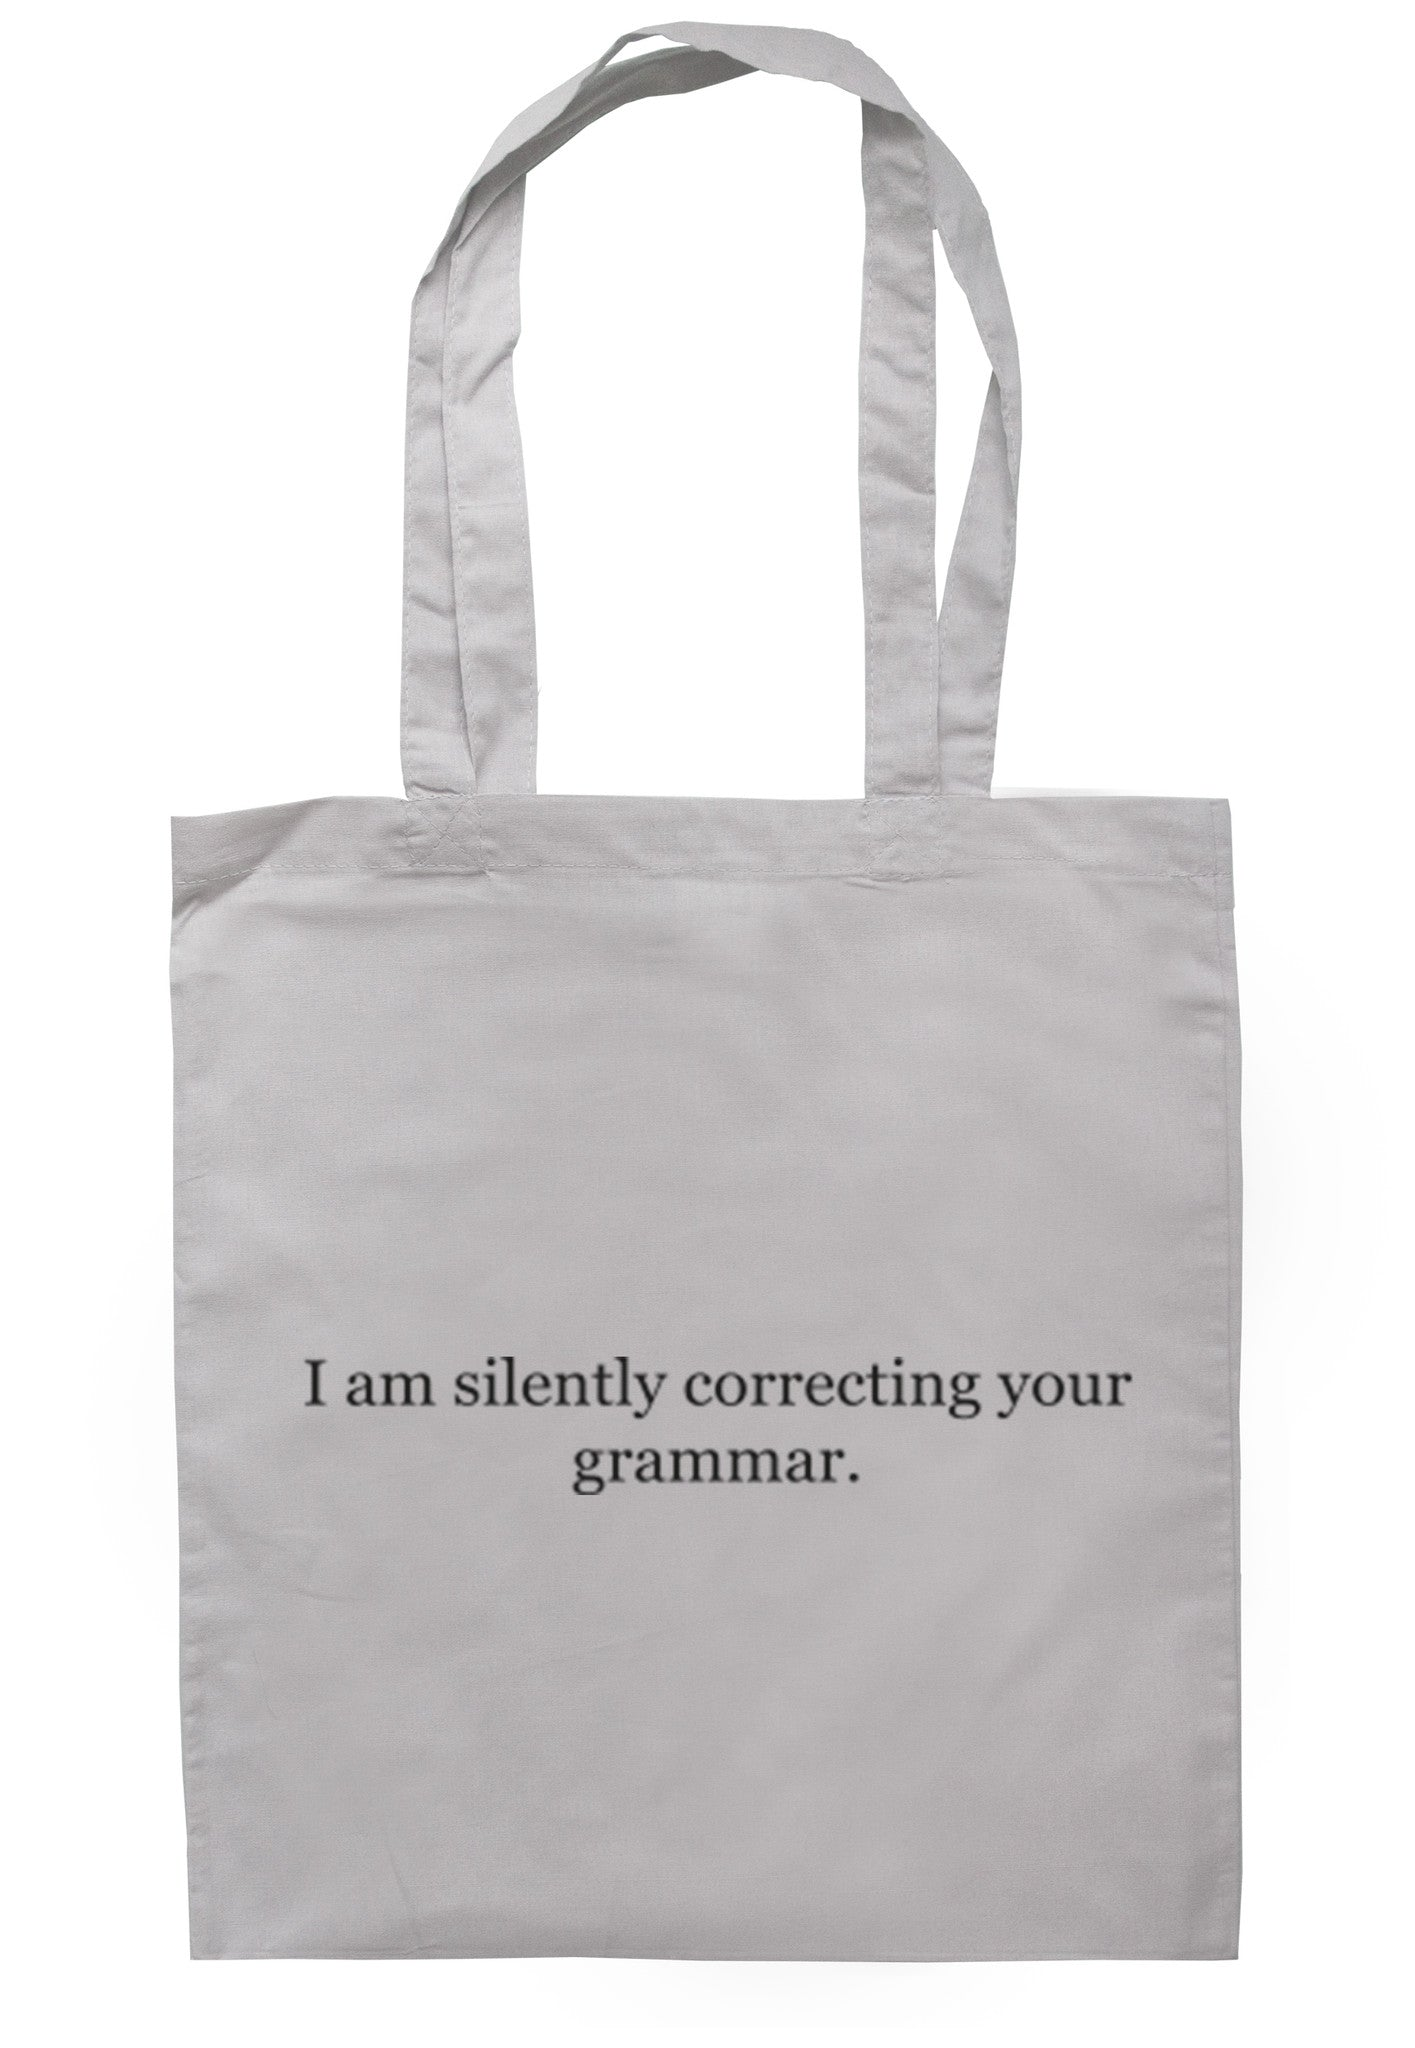 I Am Silently Correcting Your Grammar Tote Bag TB0061 - Illustrated Identity Ltd.